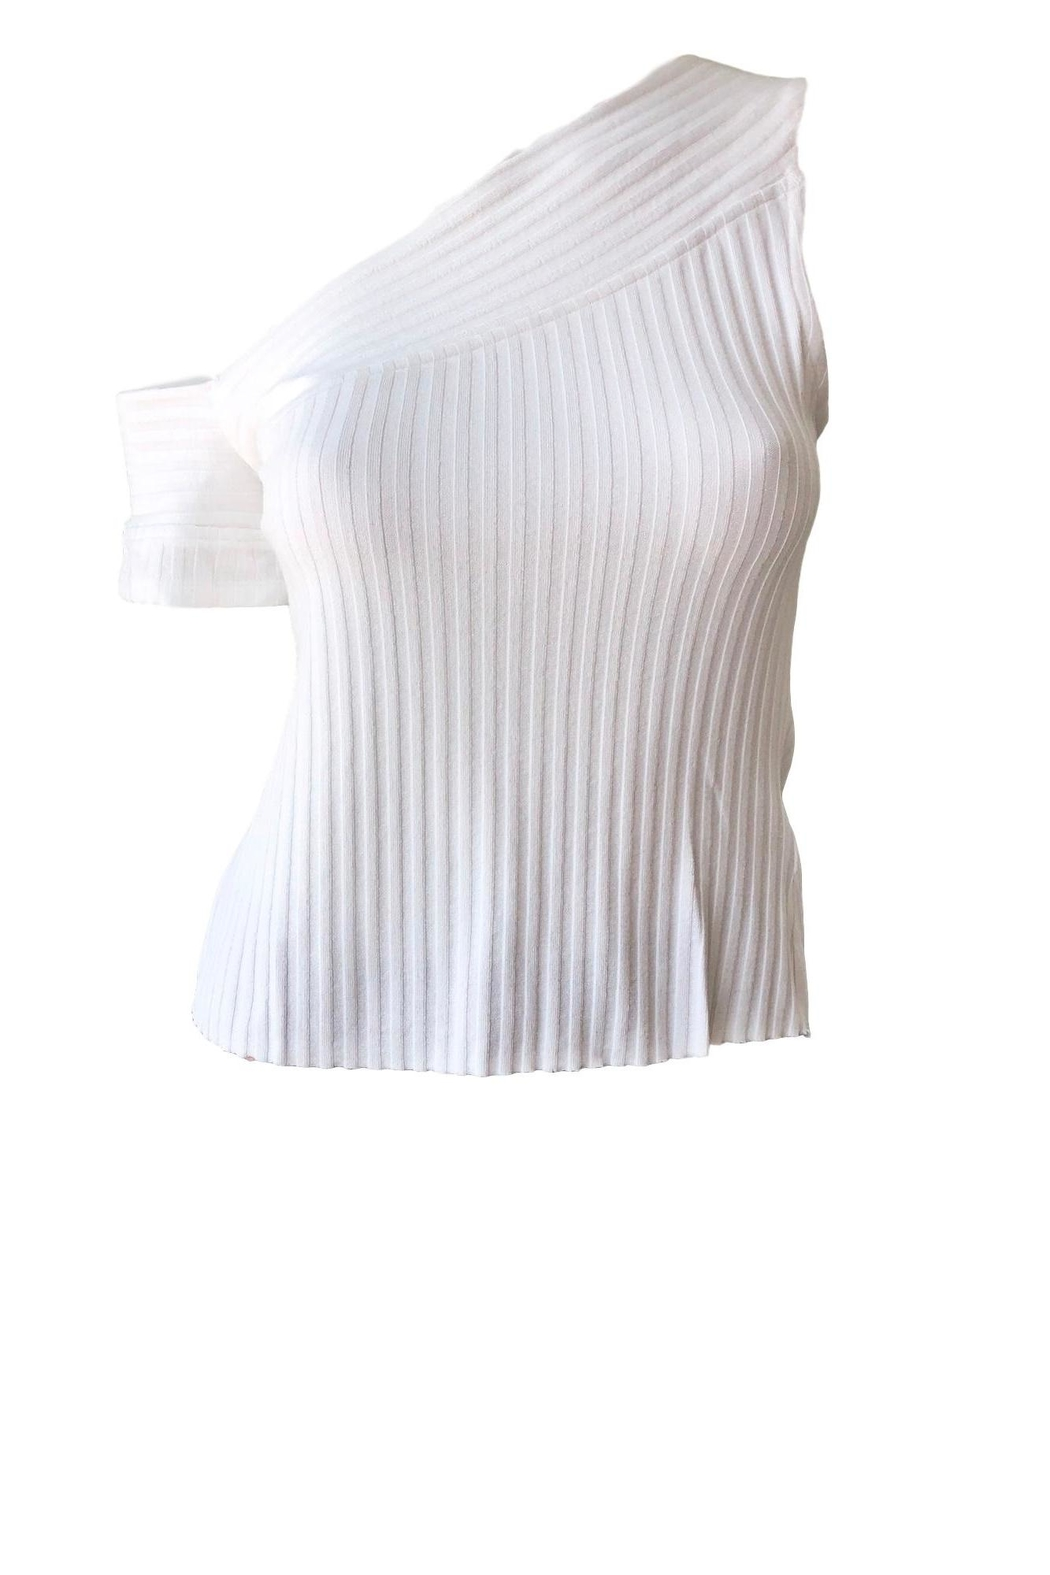 THE RANGE NYC Ribbed One-Sleeve Top - Main Image